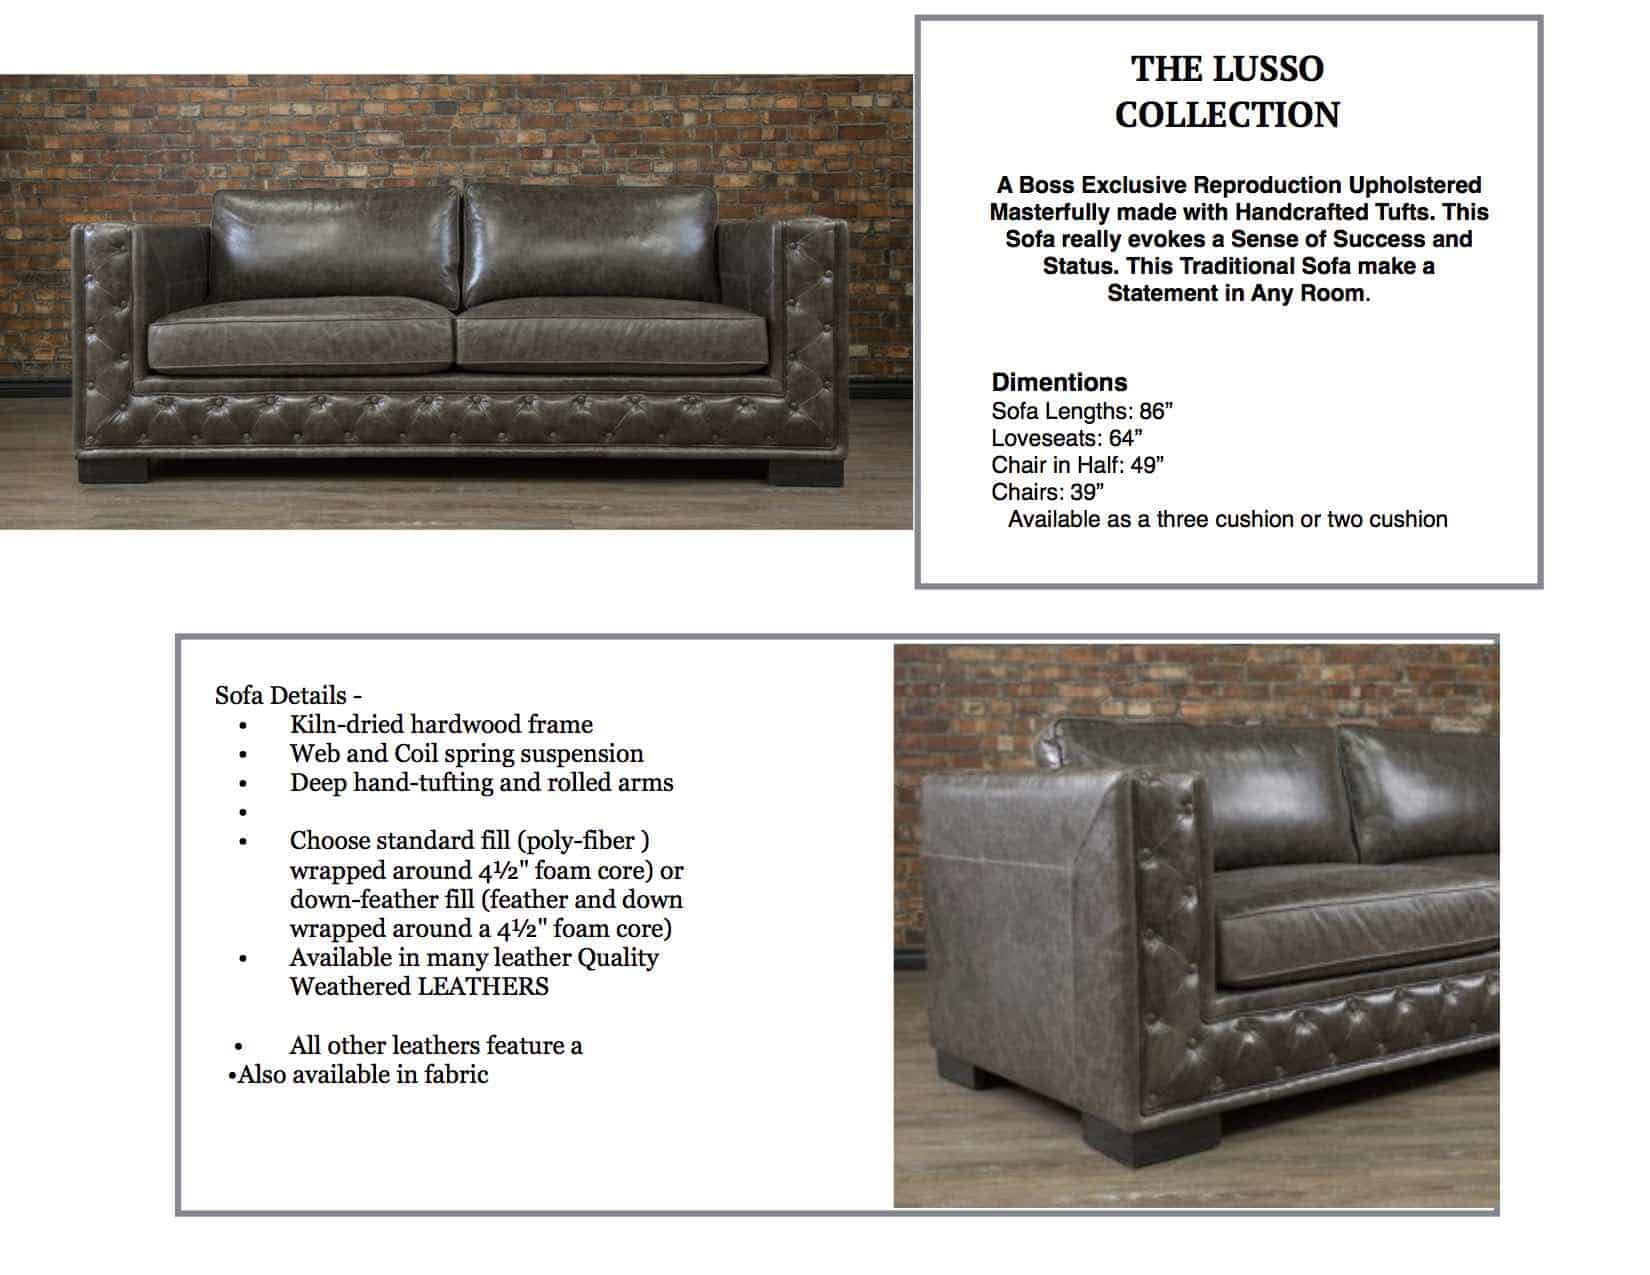 IL Lusso Leather Sofa | Canada\'s Boss Leather Sofas and Furniture